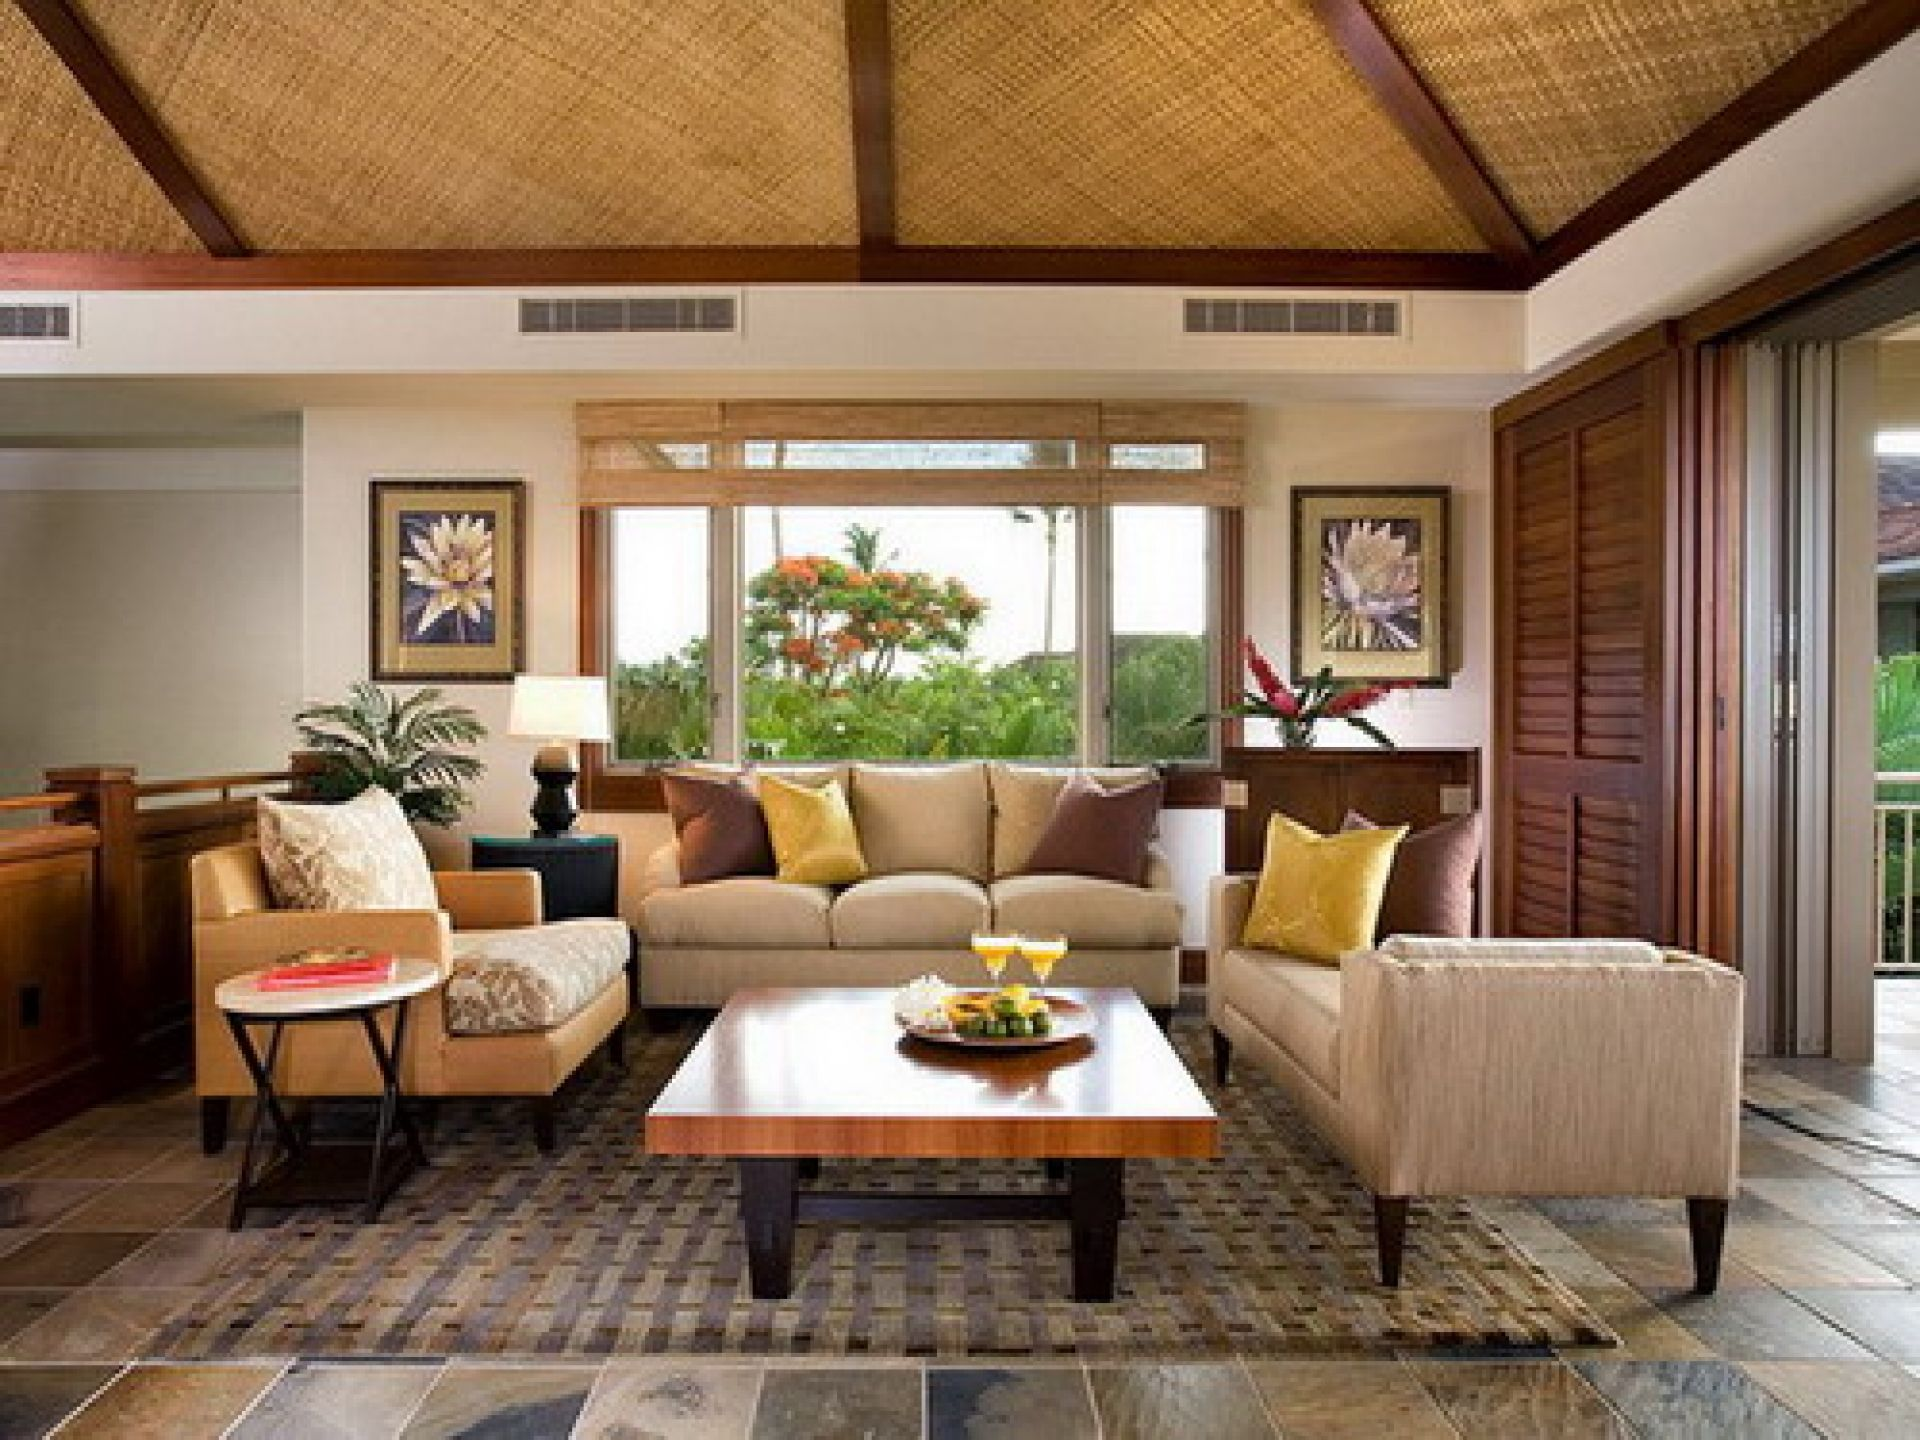 Tropical interior design 1920x1440 elegant tropical style living room